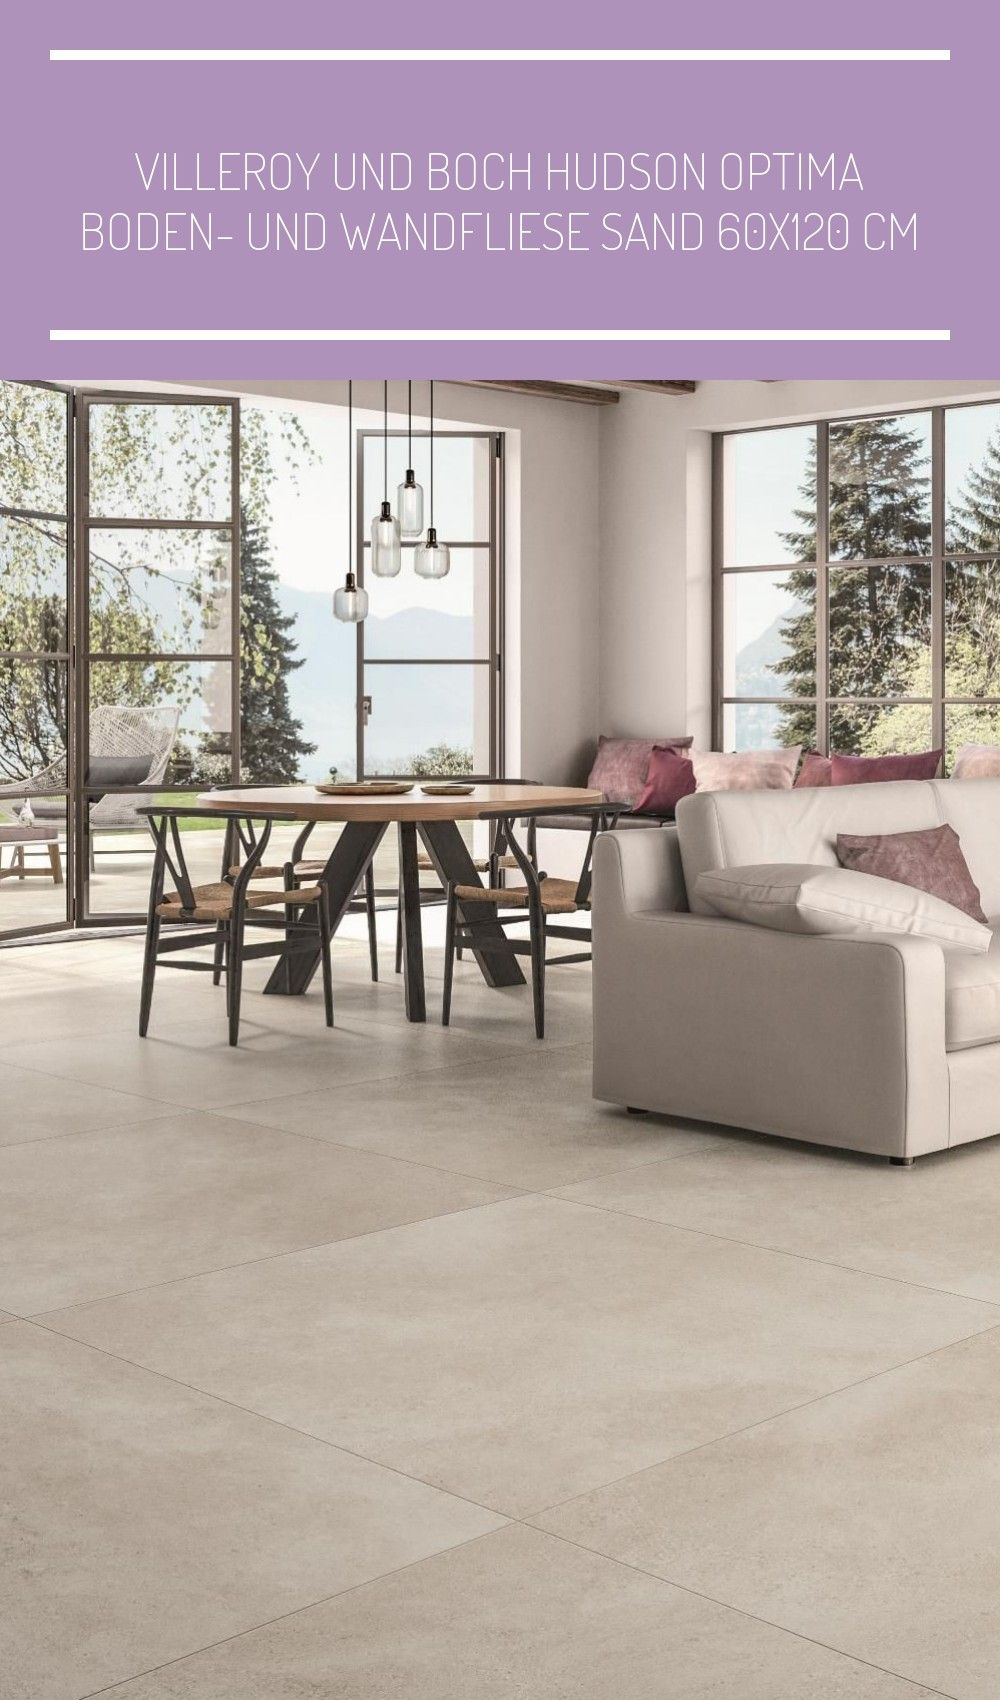 Villeroy Und Boch Hudson Optim In 2020 Room Living Room